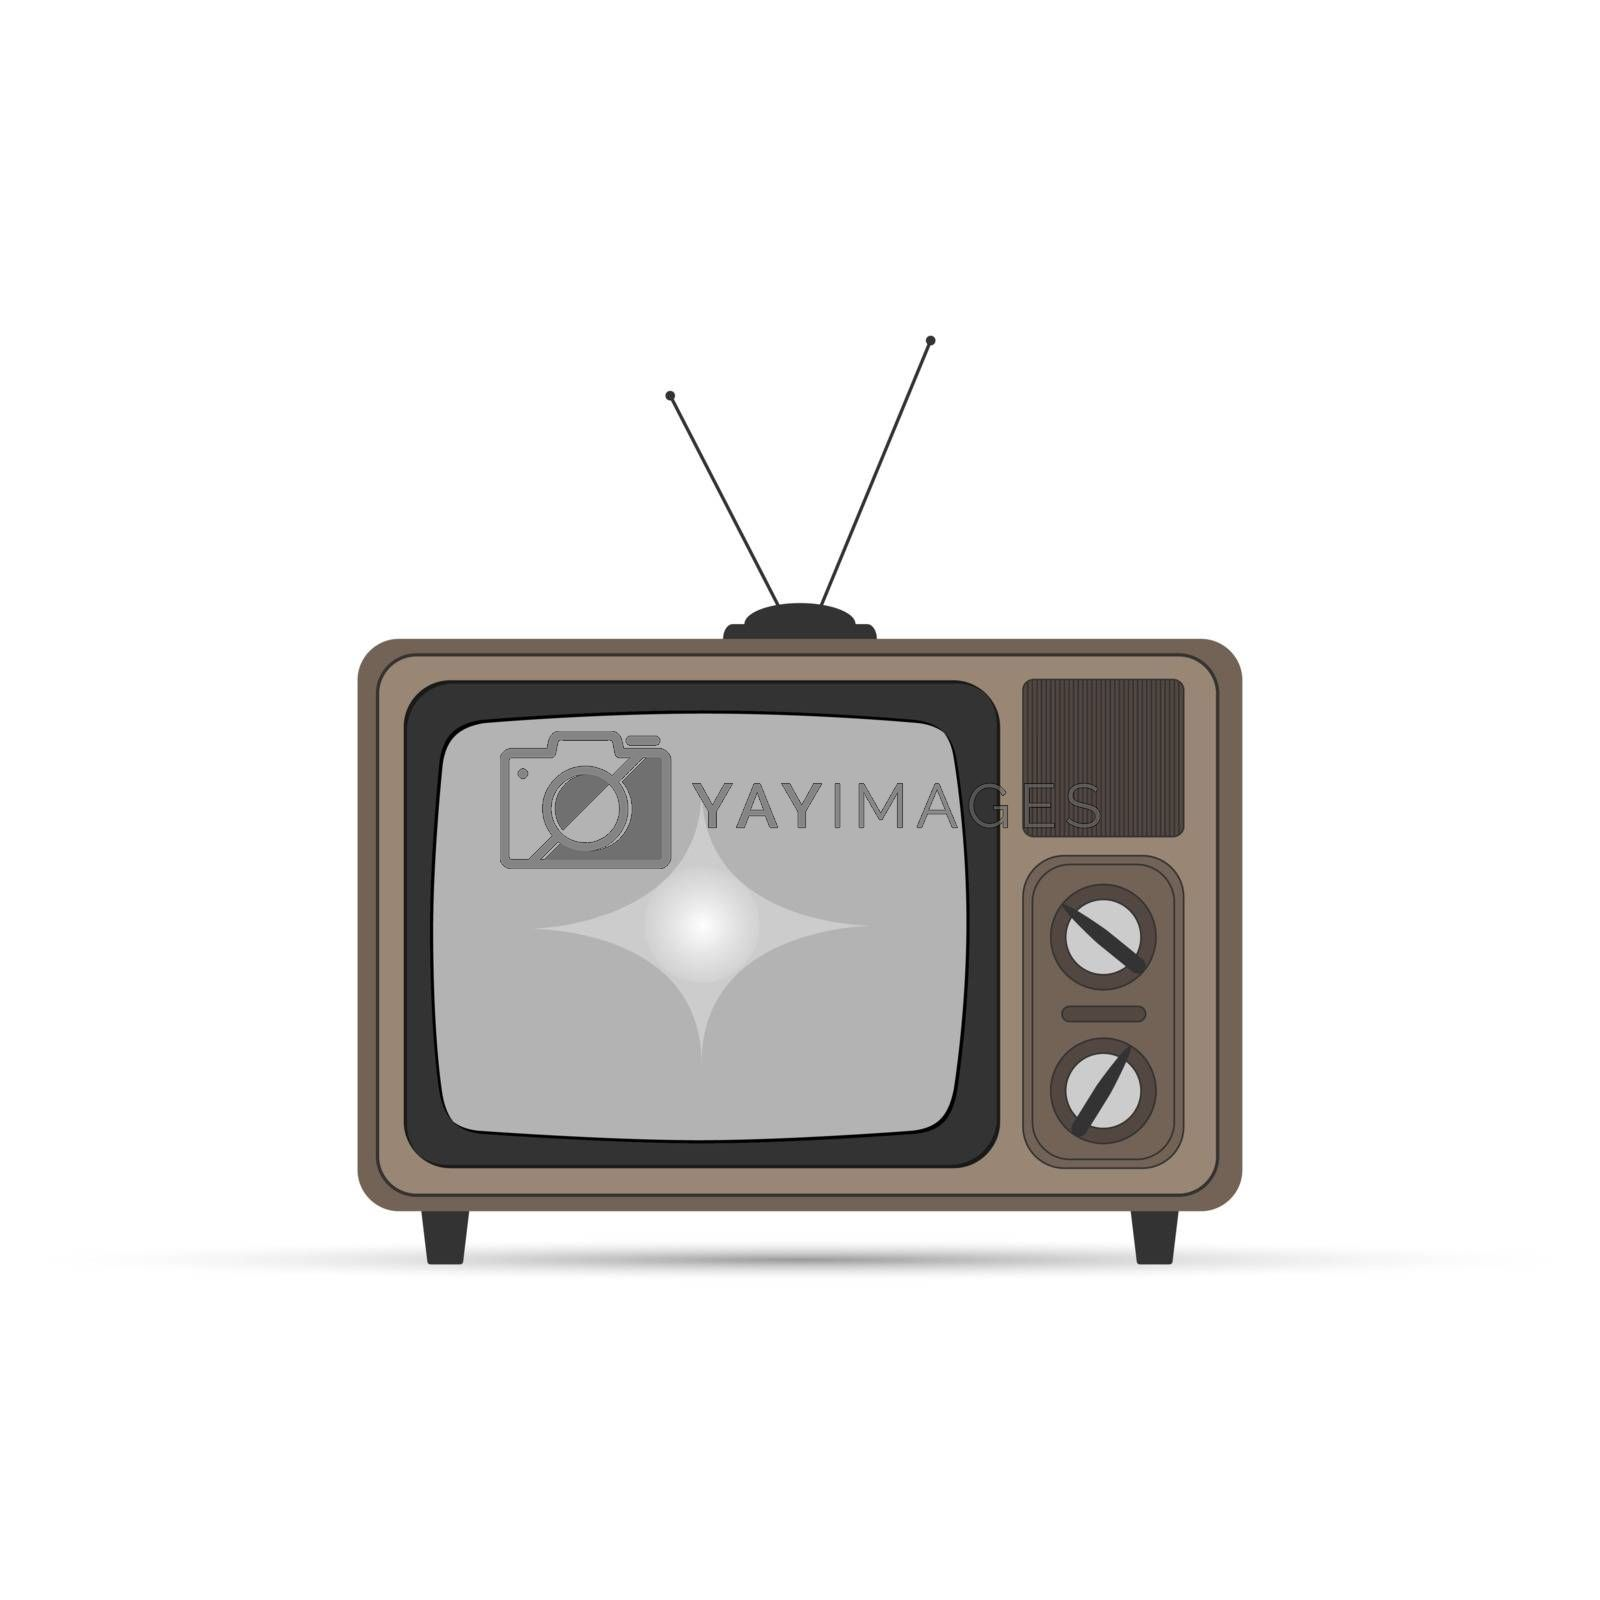 Old TV with kinescope, simple flat design